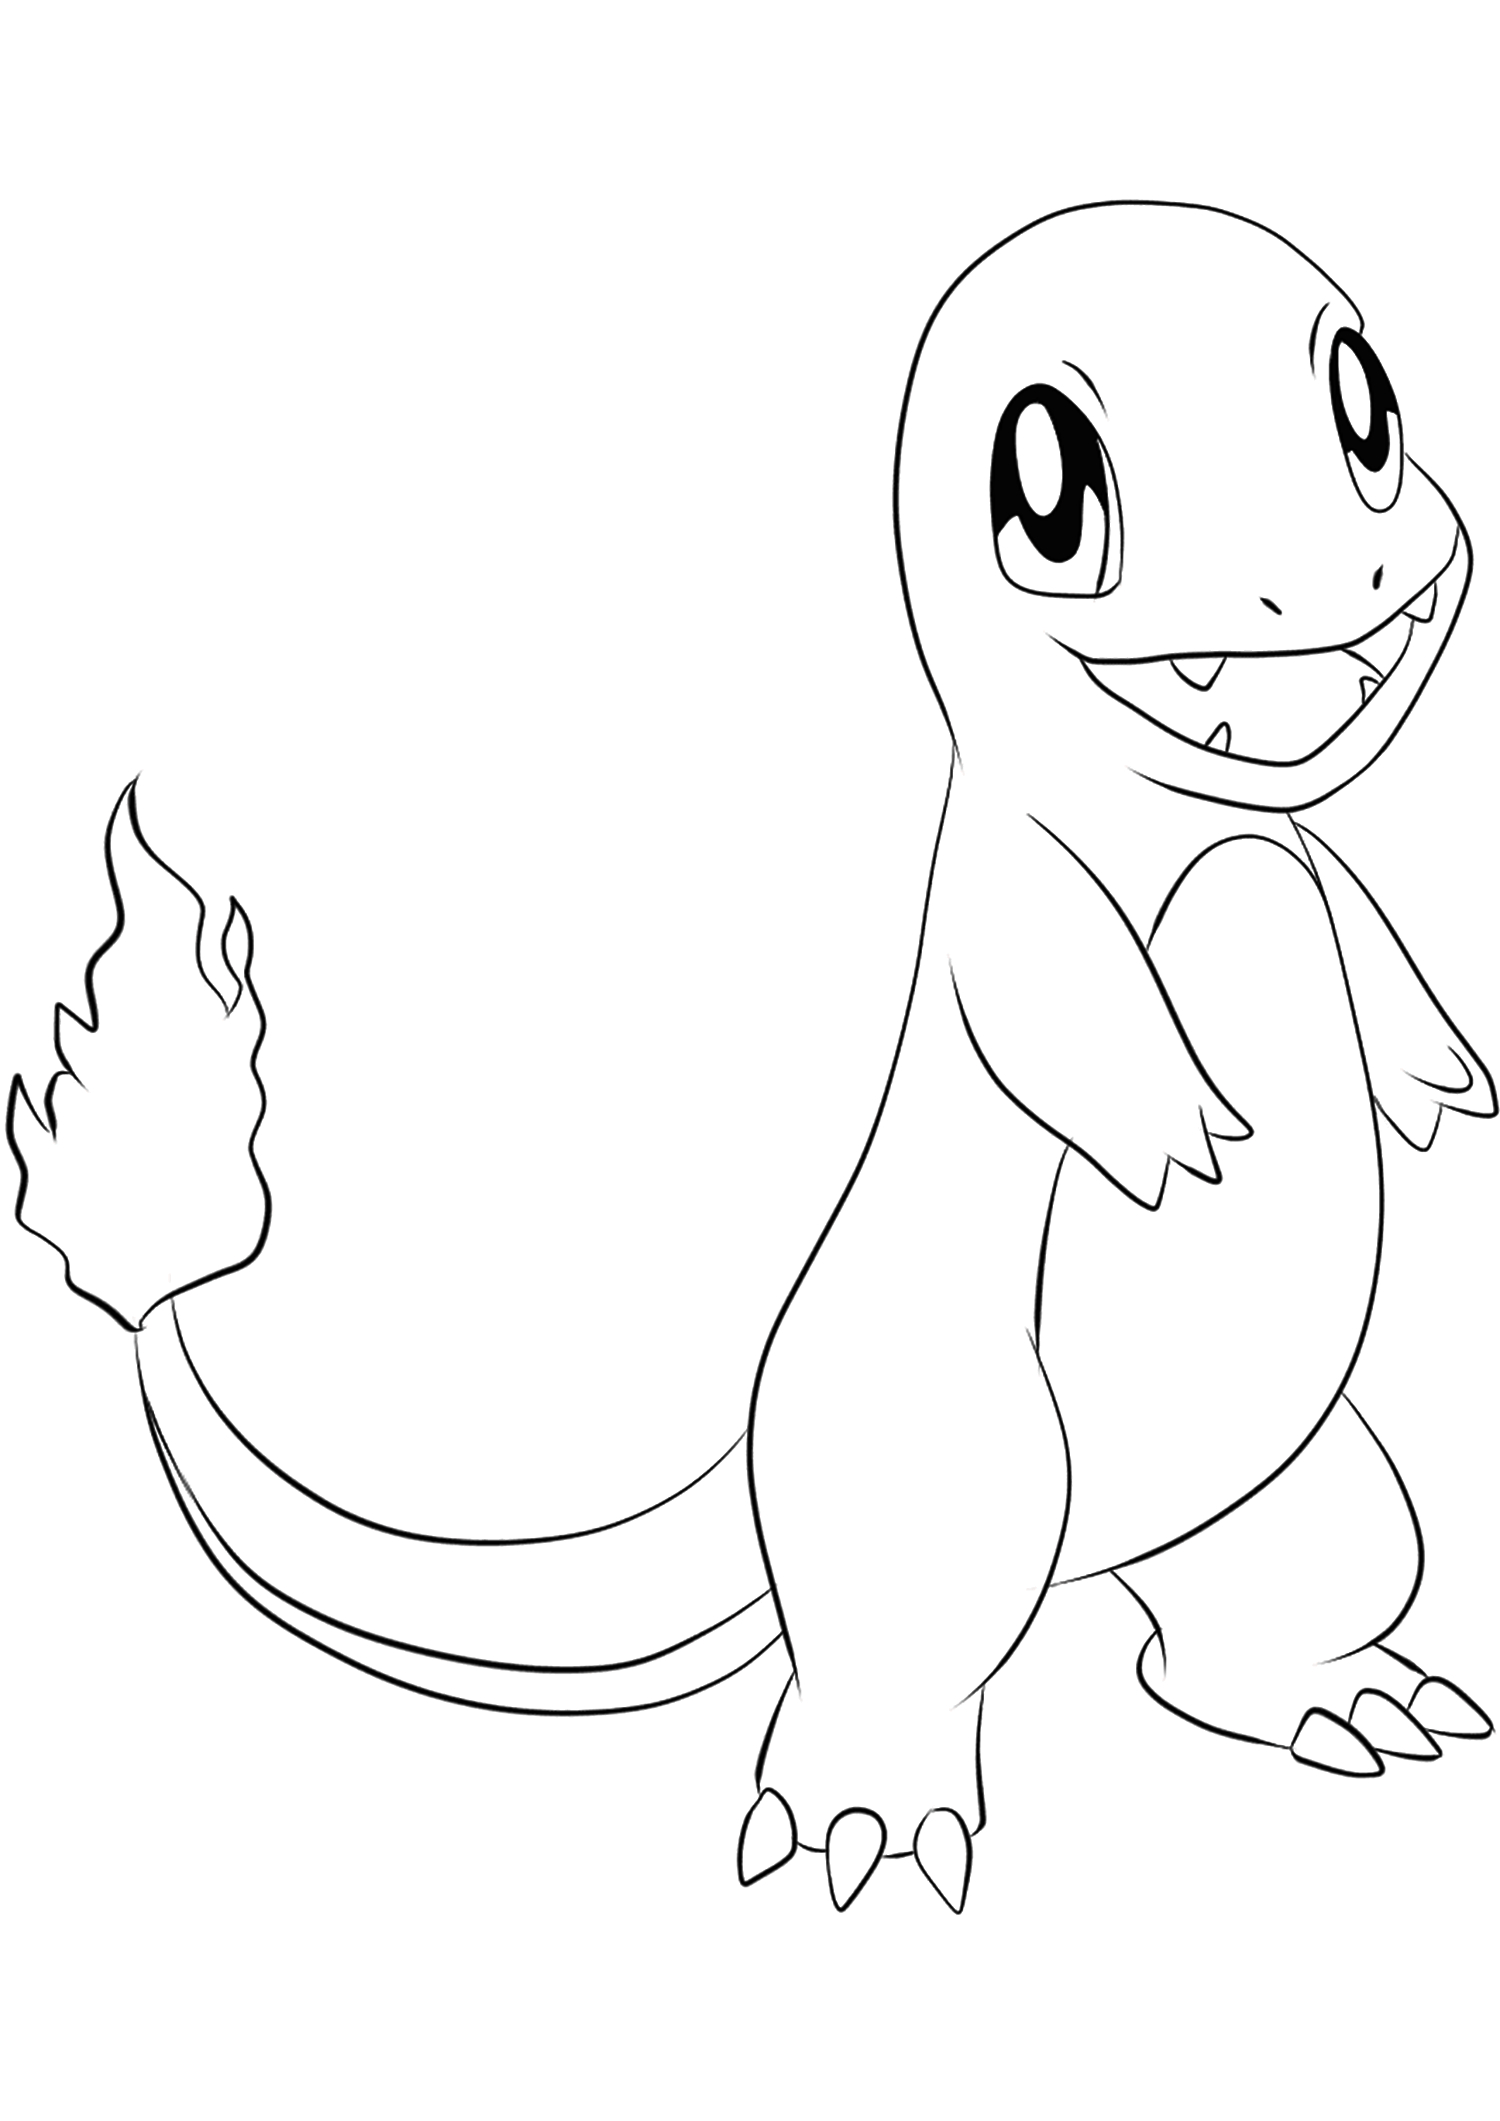 Charmander Coloring Page Charmander No04 Pokemon Generation I All Pokemon Coloring Pages